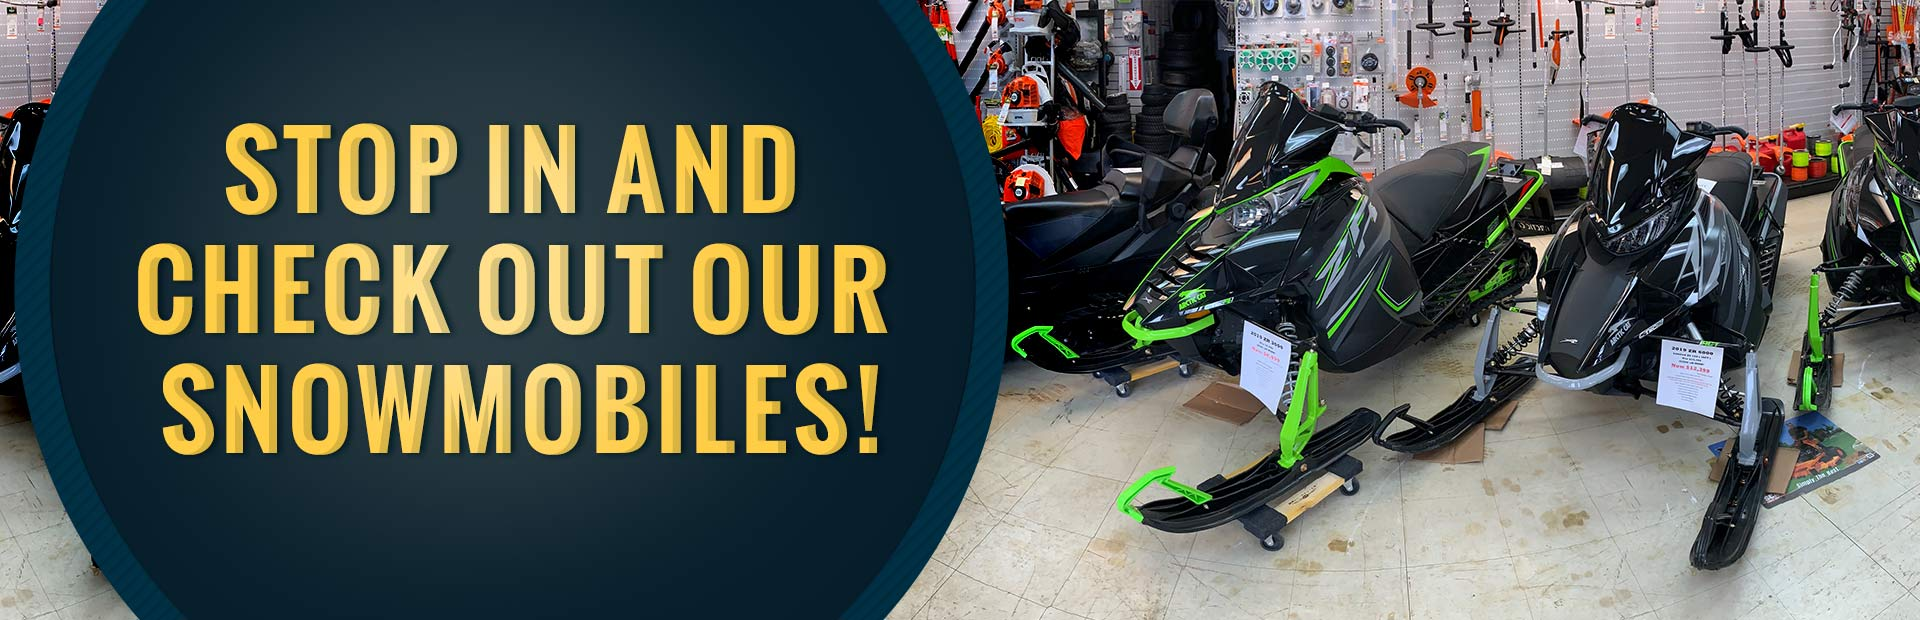 Stop in and check out our snowmobiles!